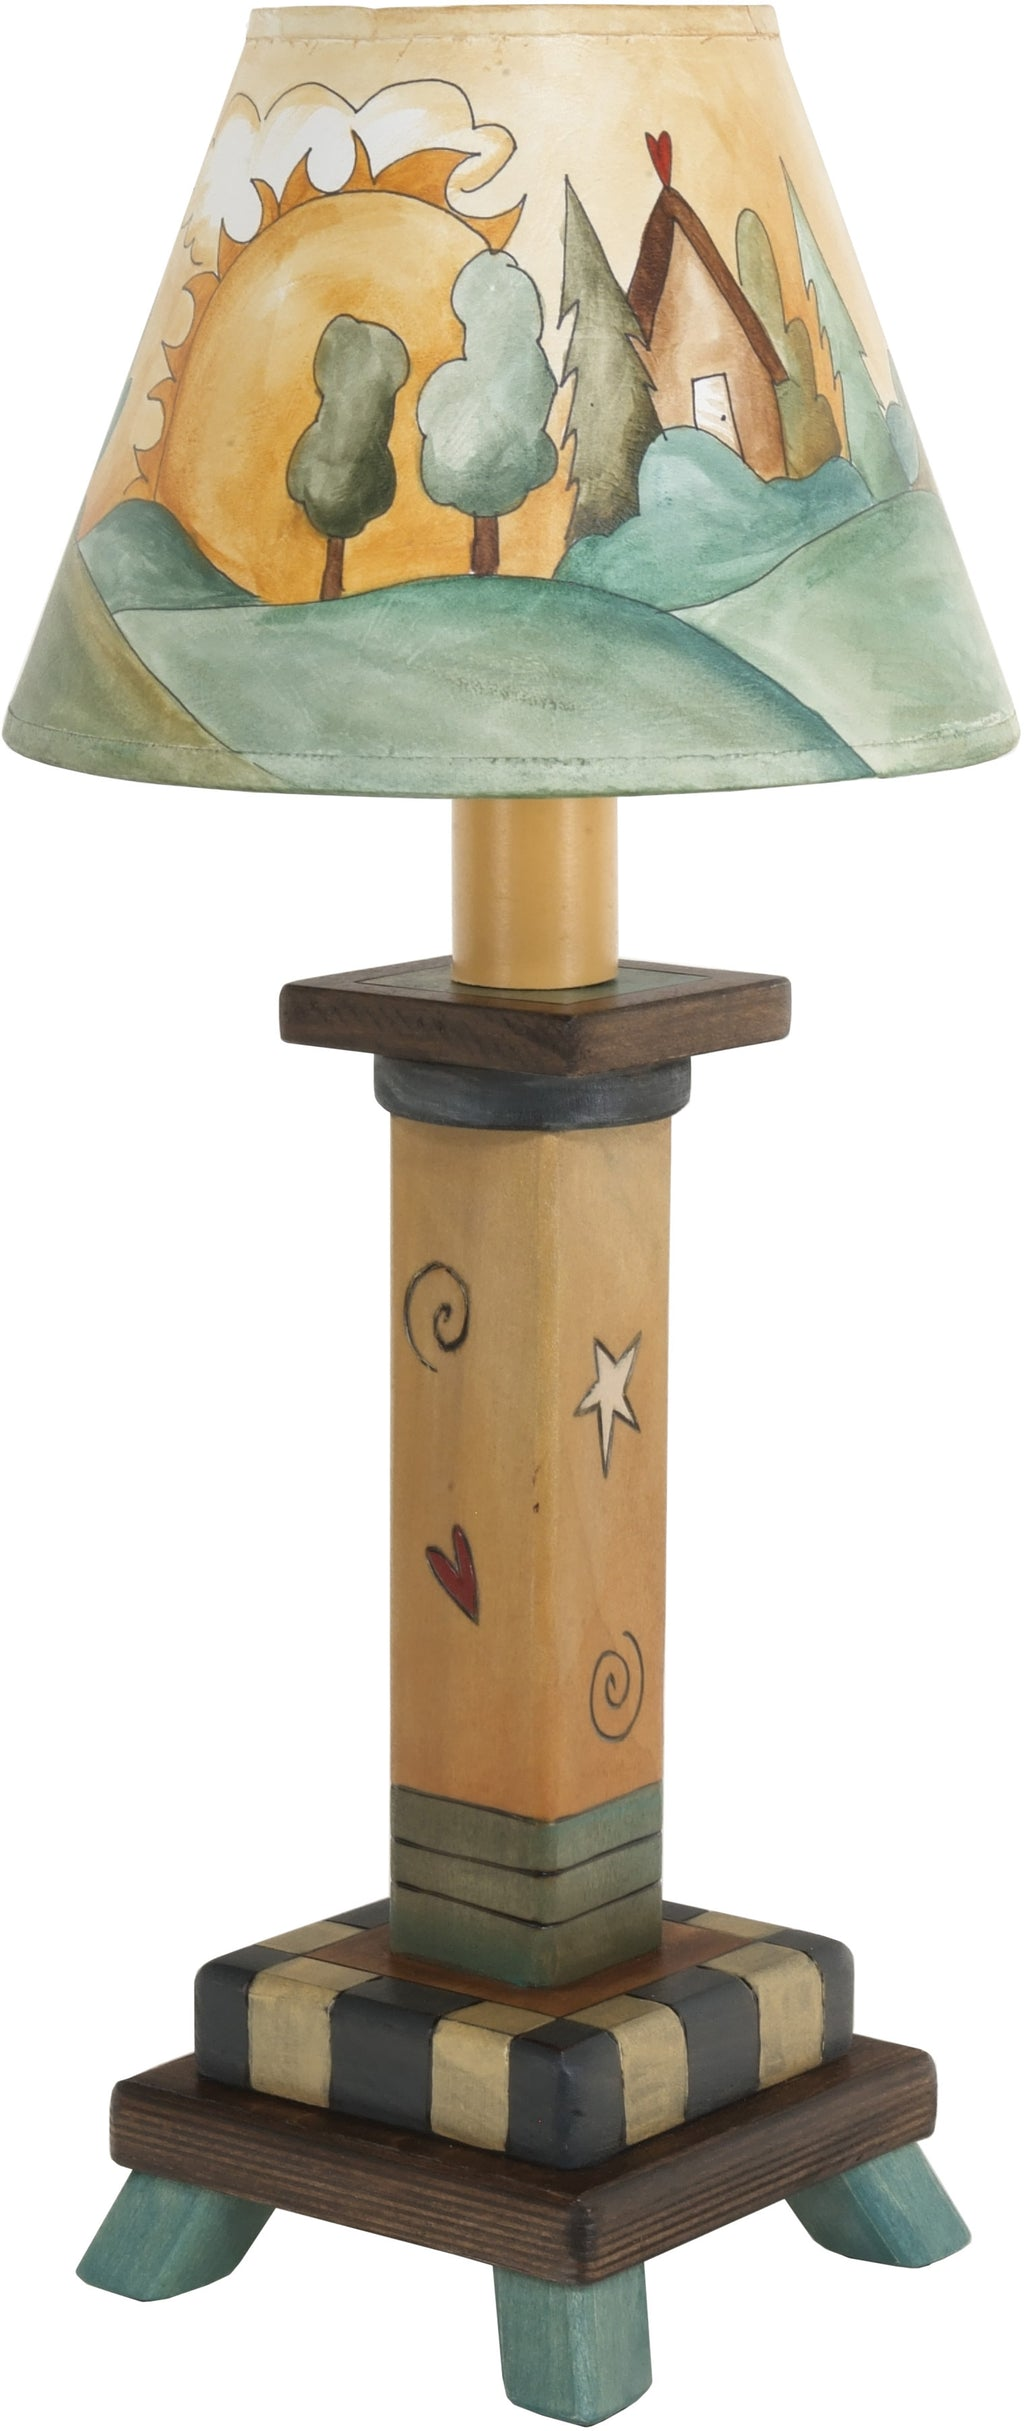 Milled Candlestick Lamp –  Lovely little lamp with a landscape motif filling the shade